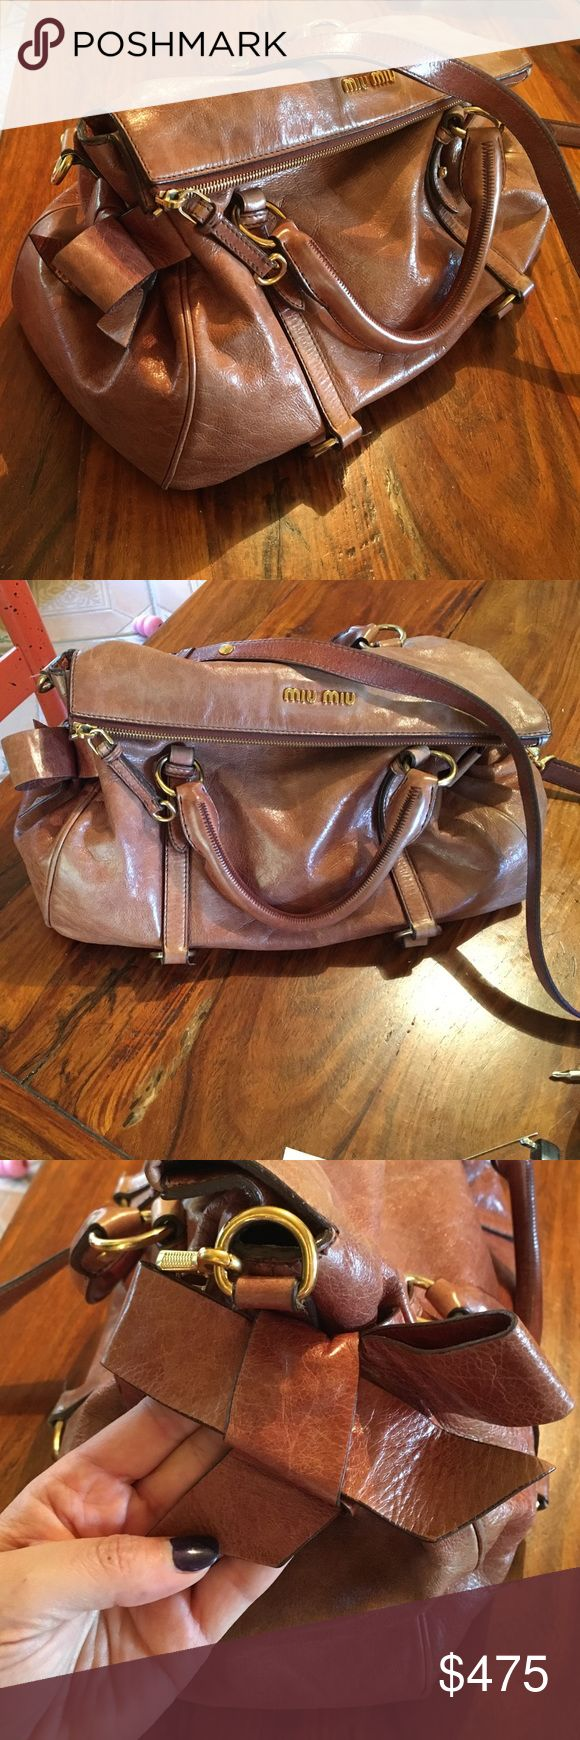 Miu Miu bow bag large Brown bow bag AUTHENTIC bow bag. Lovely soft leather from light use. Very roomy with a long cross body strap and two adorable bows on the sides. Slight fading on top of bag and I do not have the dust bag - price reflects the use. Serious inquiries only thanks! Will consider partial trade for botkier, liebskind. Thanks. Miu Miu Bags Hobos